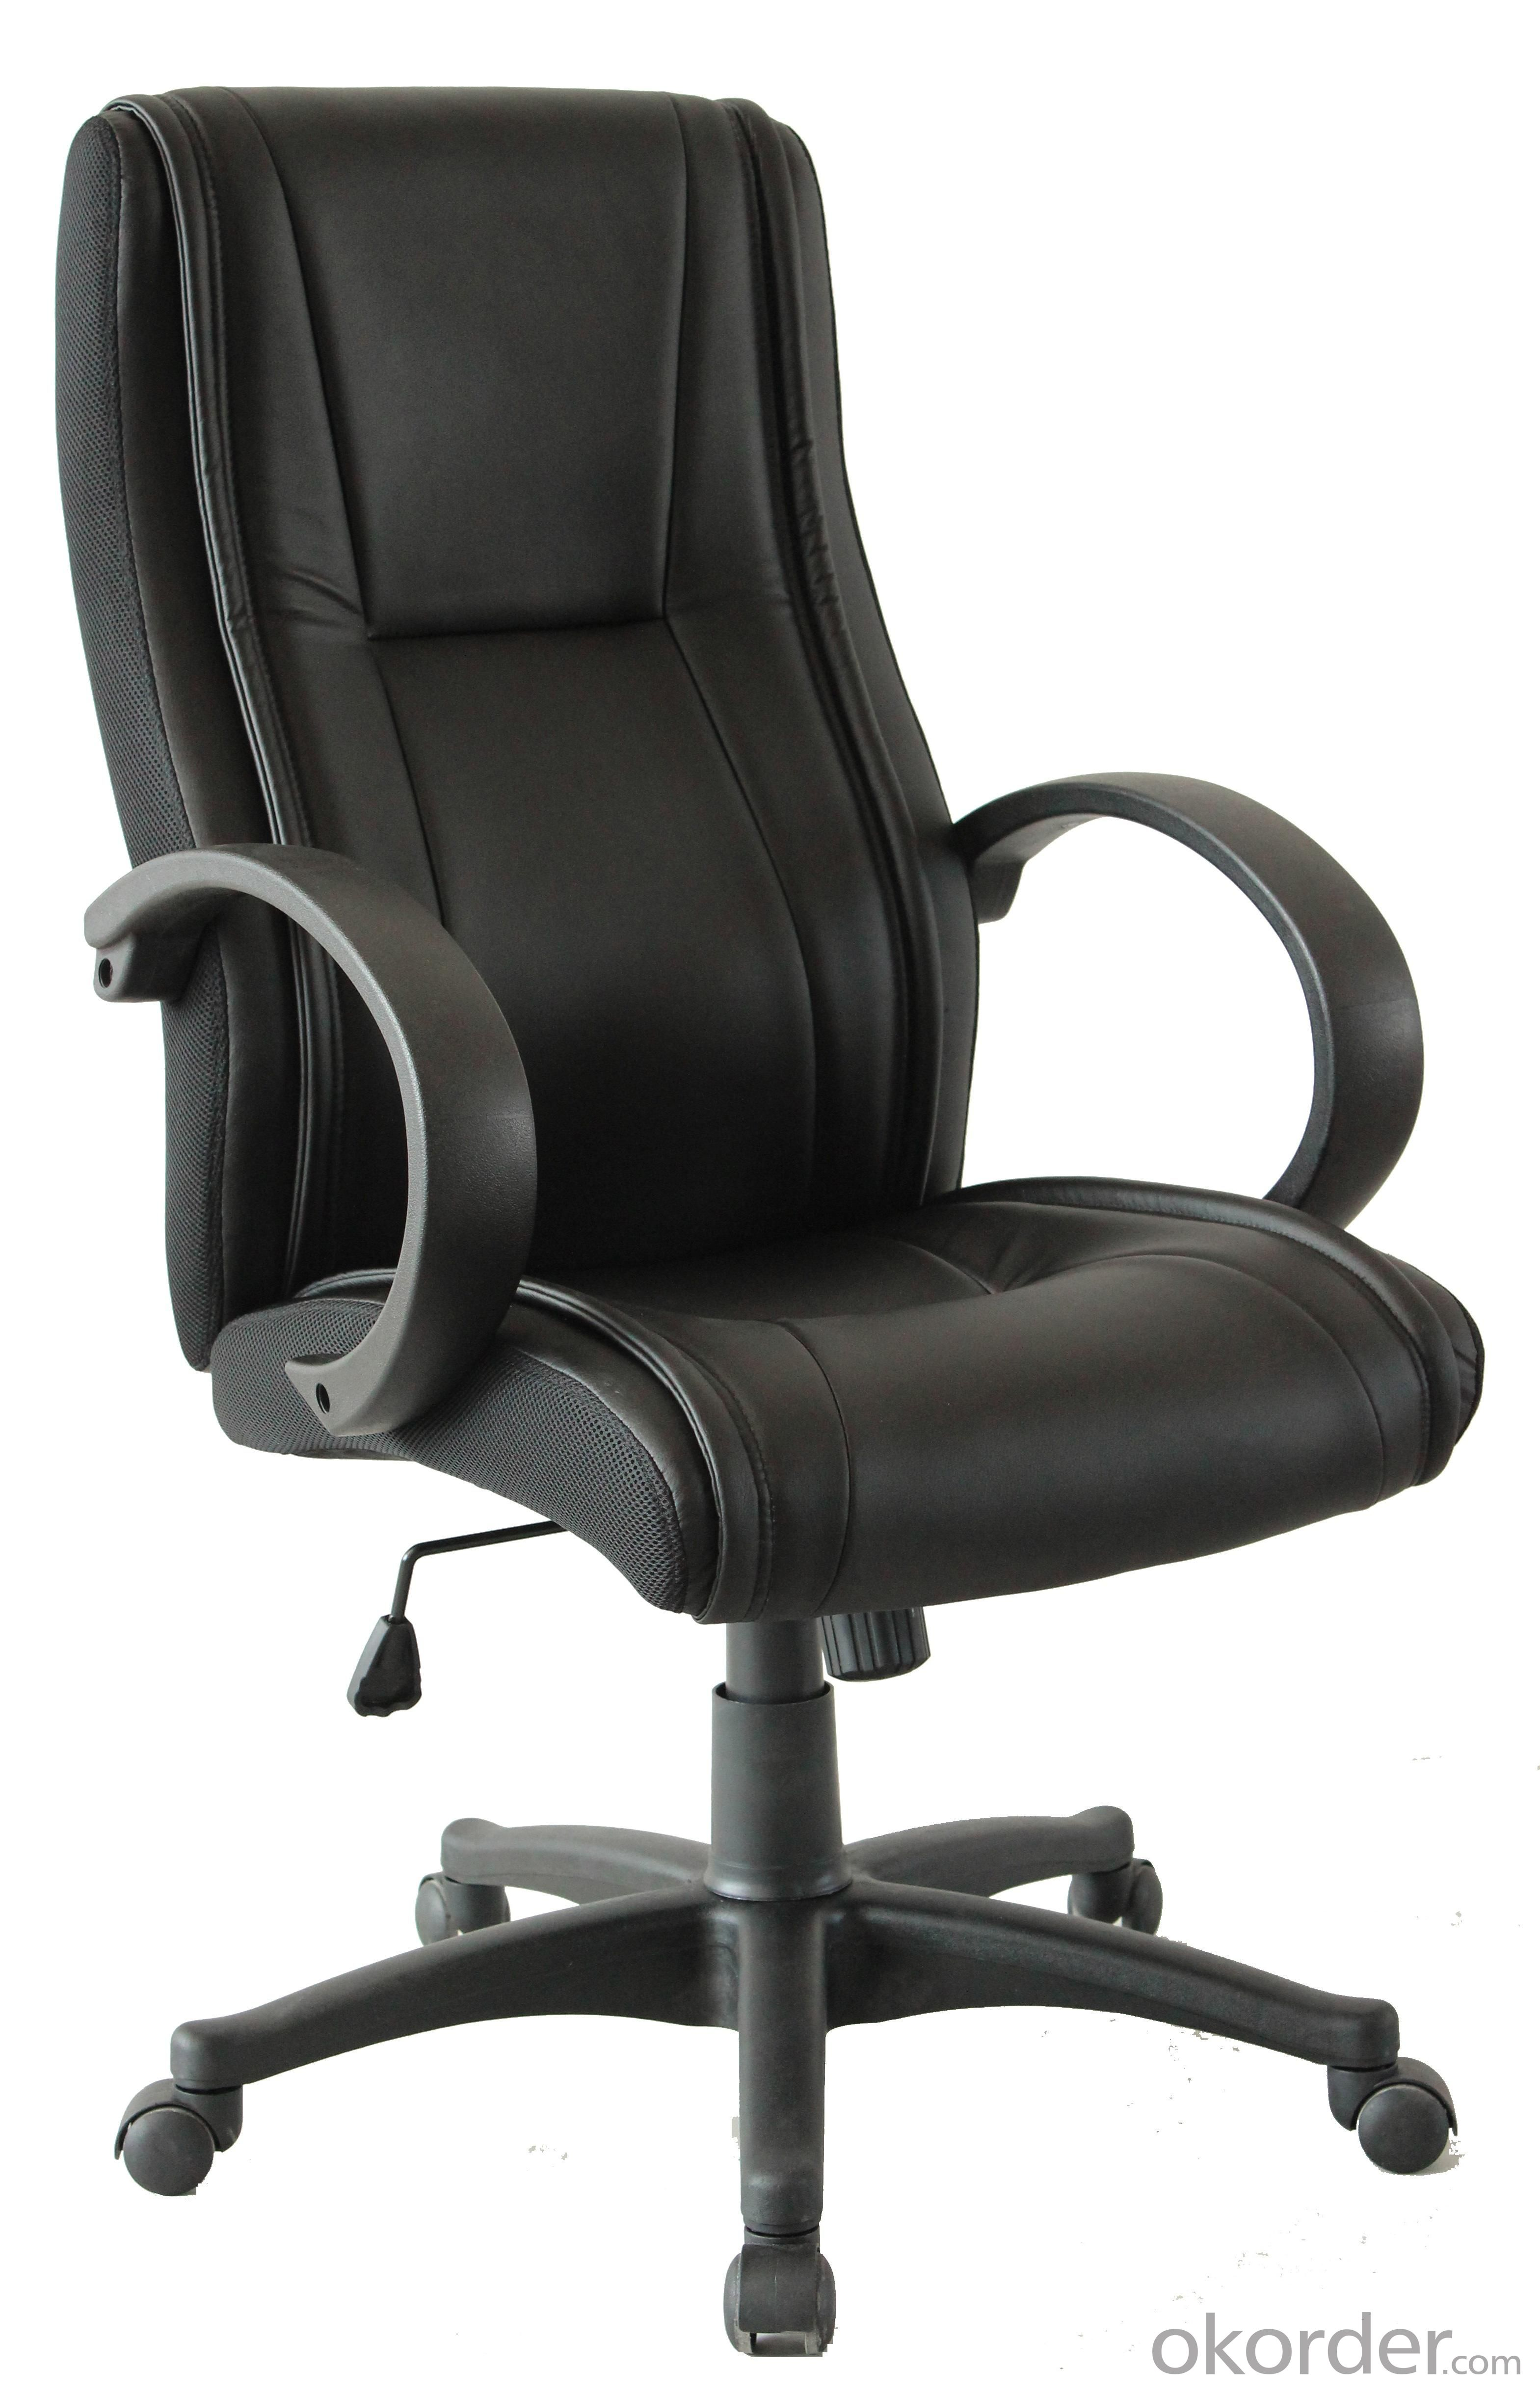 New Design Hot Selling Fixed Armrest With Soft Pads High Quality Office Chair